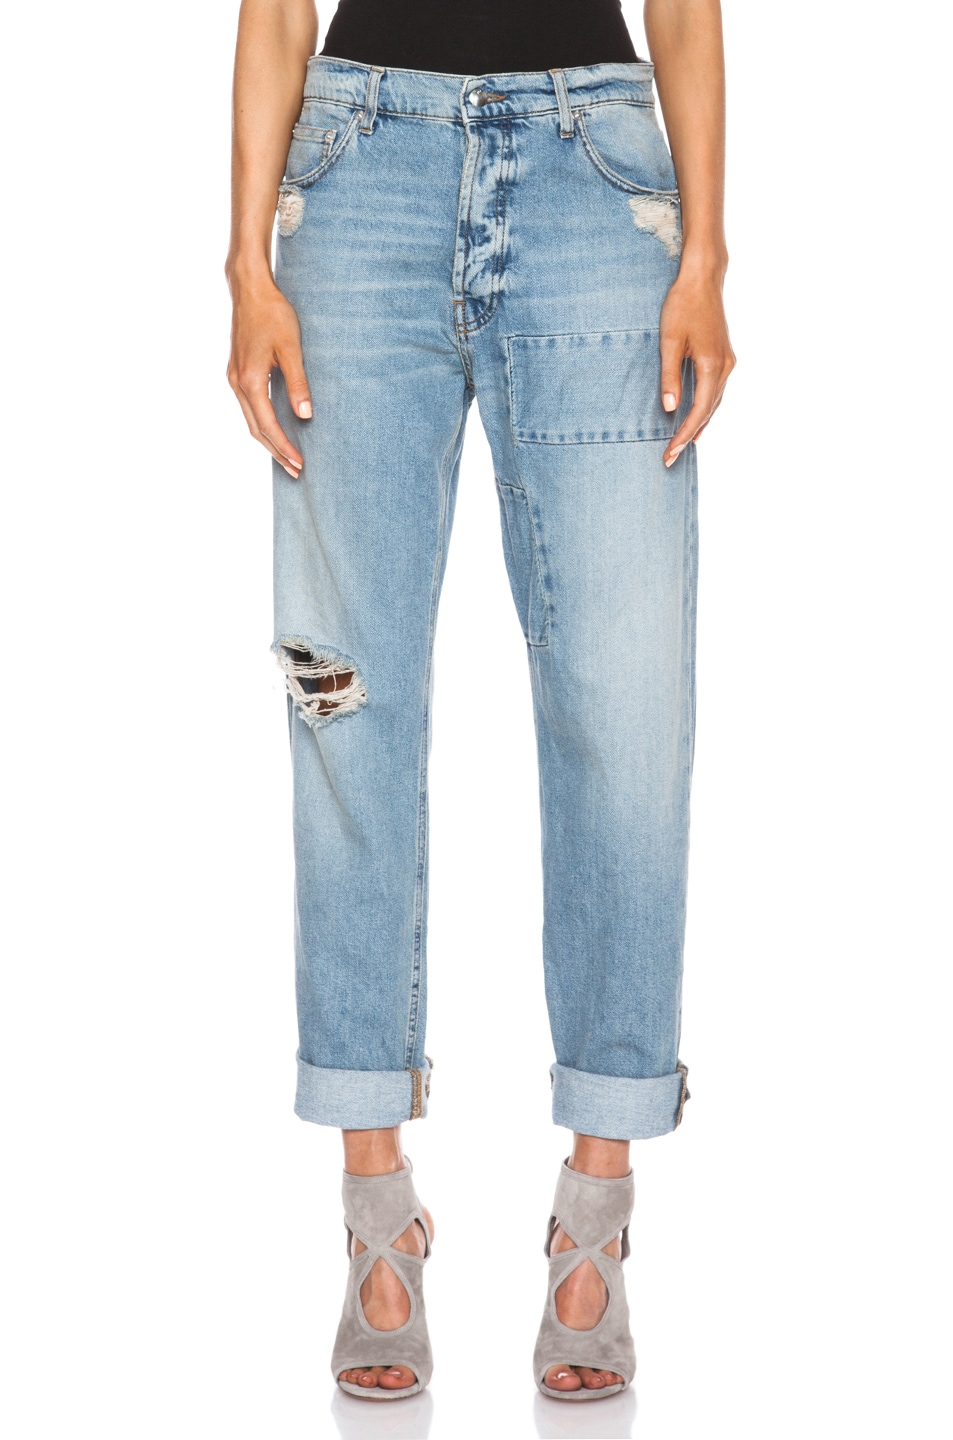 Image 1 of McQ Alexander McQueen Patched Boyfriend Jean in Distressed Indigo